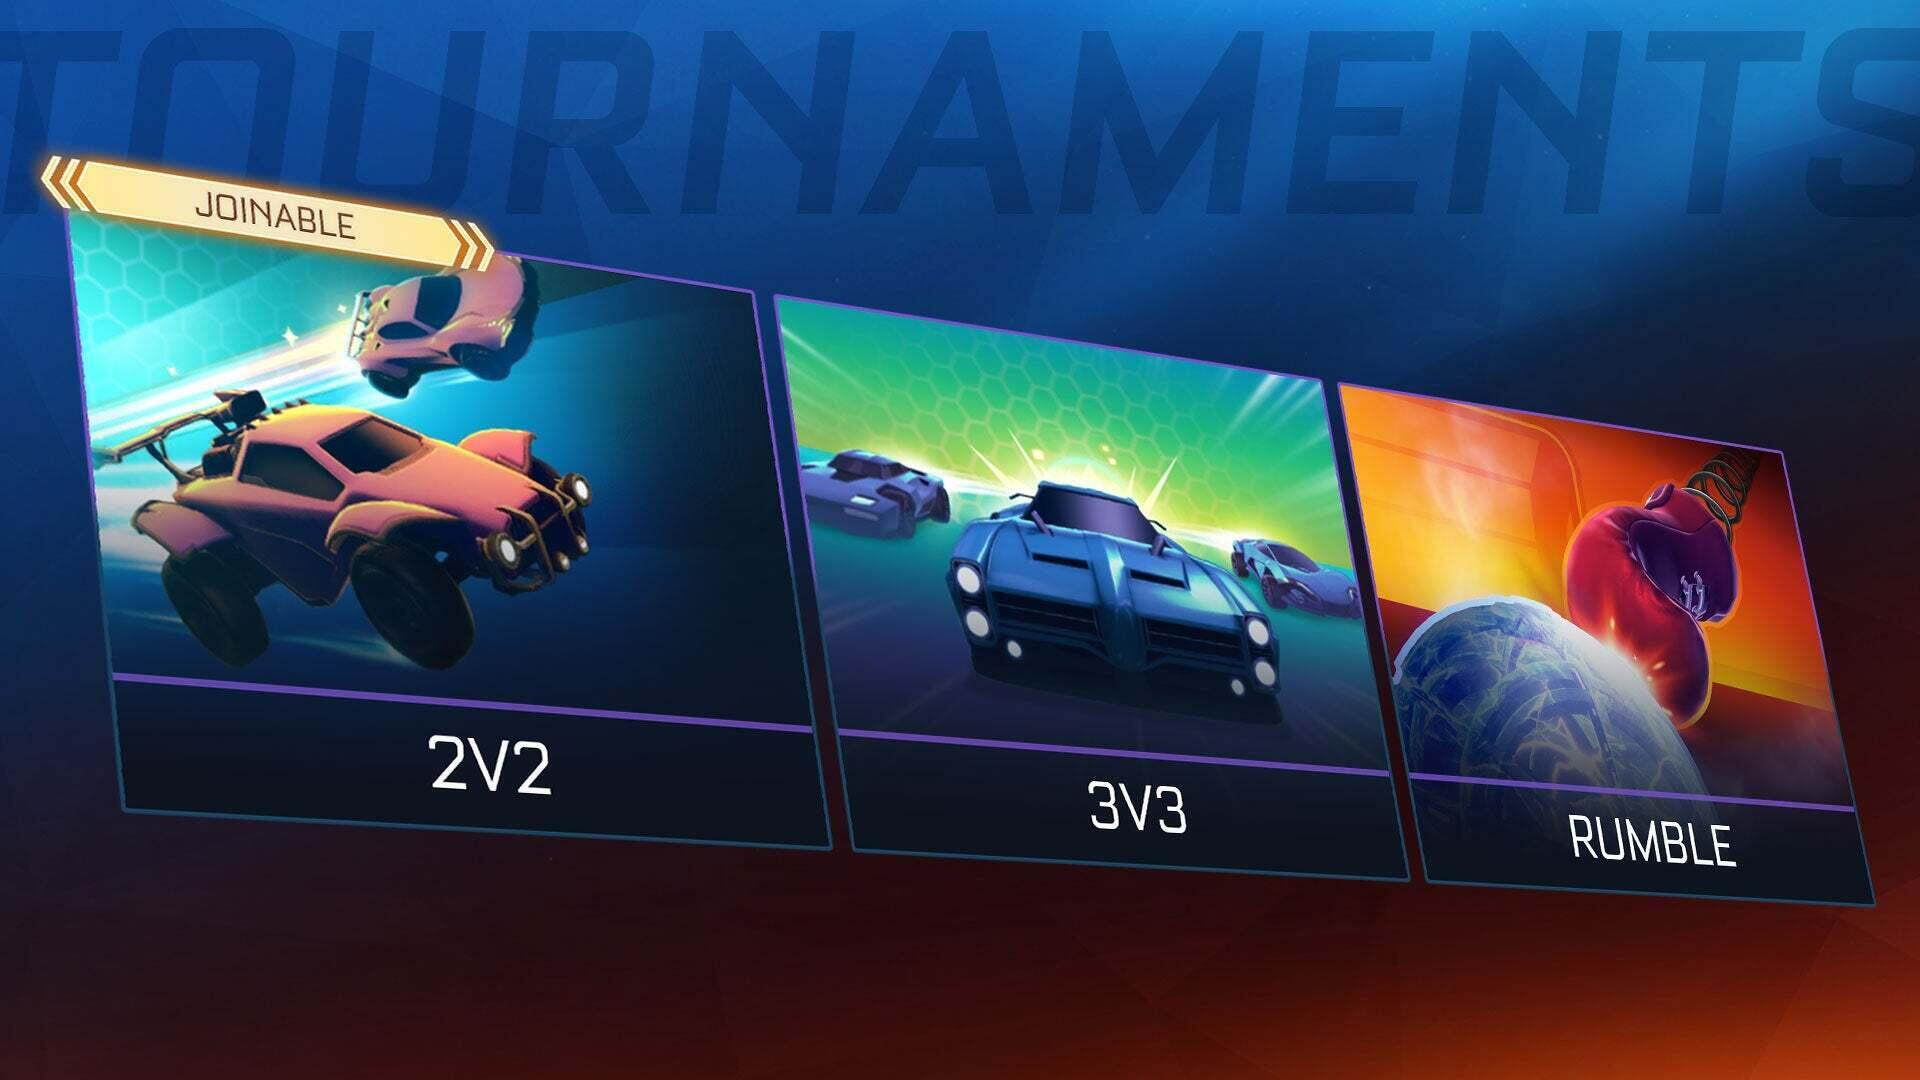 2v2 Tournaments and More Coming in </br> Season 4 Image